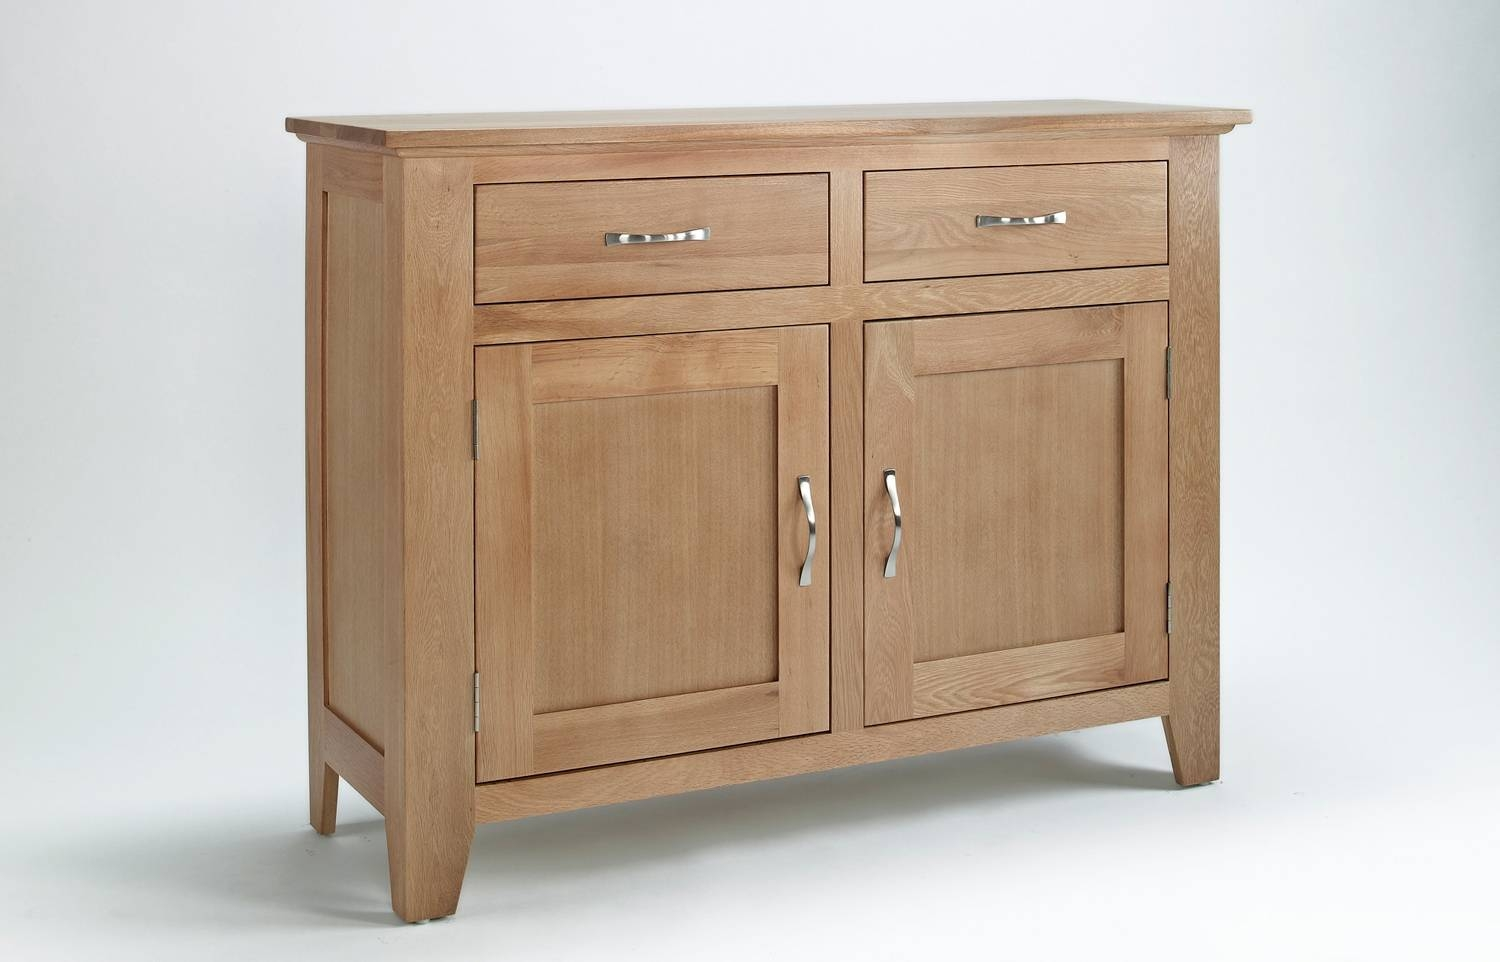 Sherwood Oak Sideboard With 2 Doors & 2 Drawers intended for Sideboards With Drawers (Image 11 of 15)